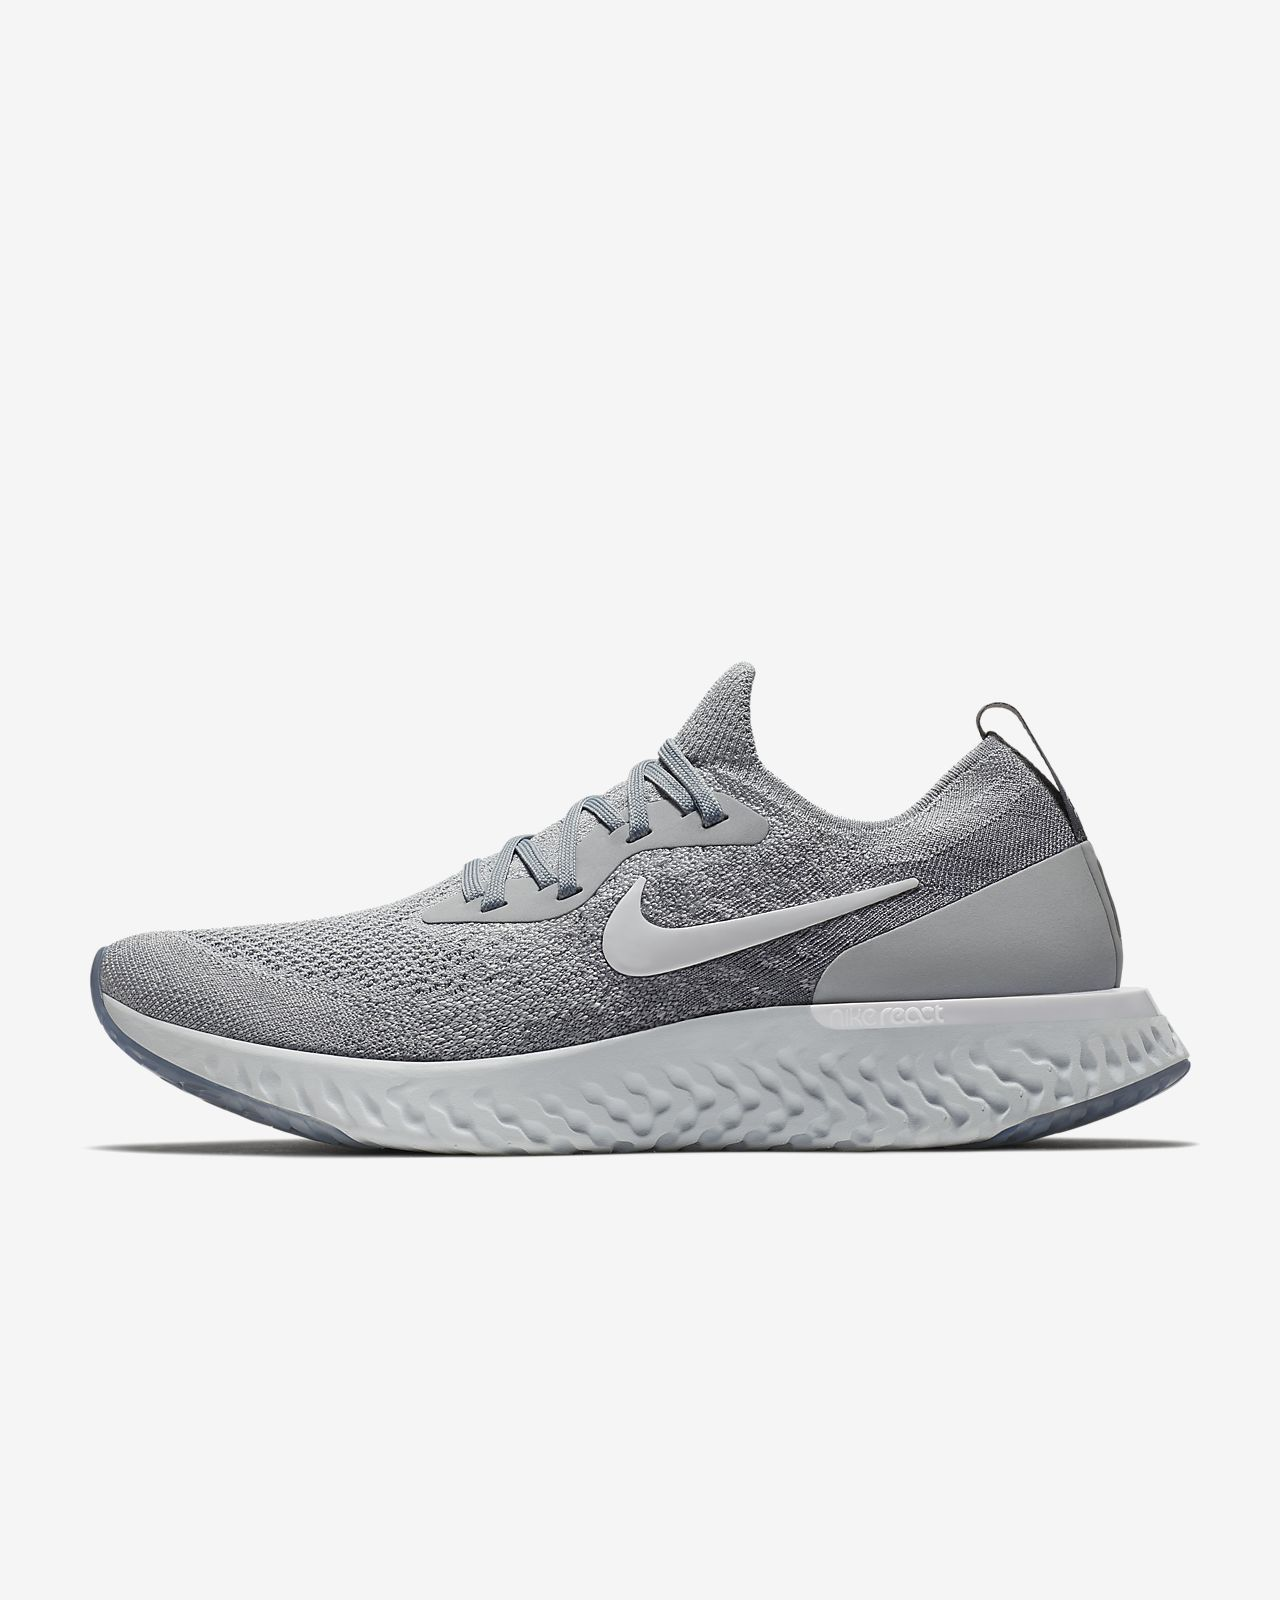 delincuencia ola escolta  Nike Epic React Flyknit Men's Running Shoe | Running shoes for men, Running  shoes fashion, Best running shoes